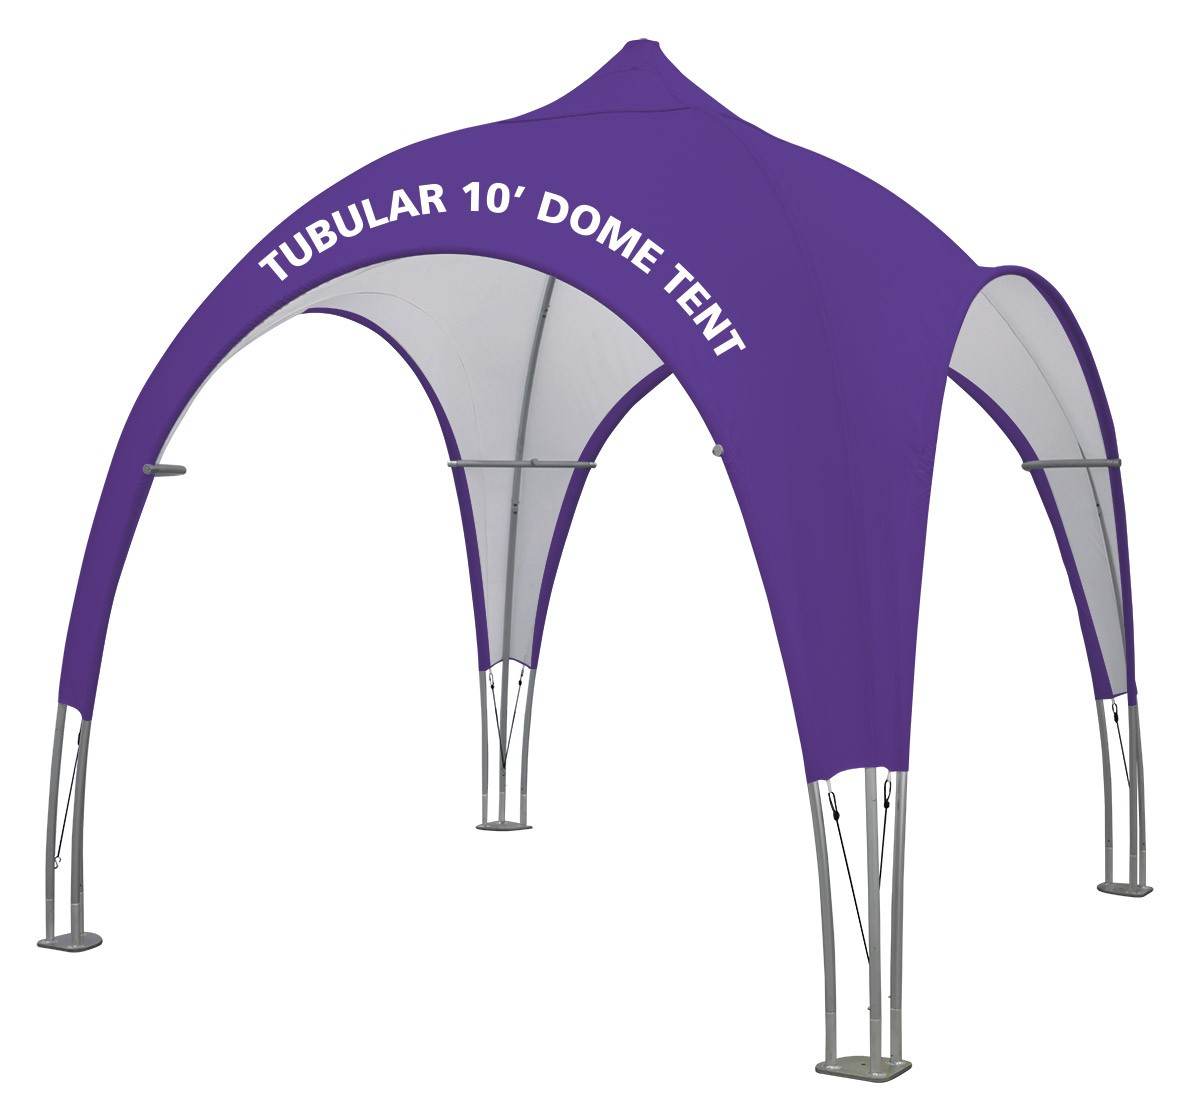 10u0027 Dome Tent; 10u0027 Dome Tent  sc 1 st  Banner Stand Pros & 10u0027 Dome Tent Kit | BannerStandPros.com